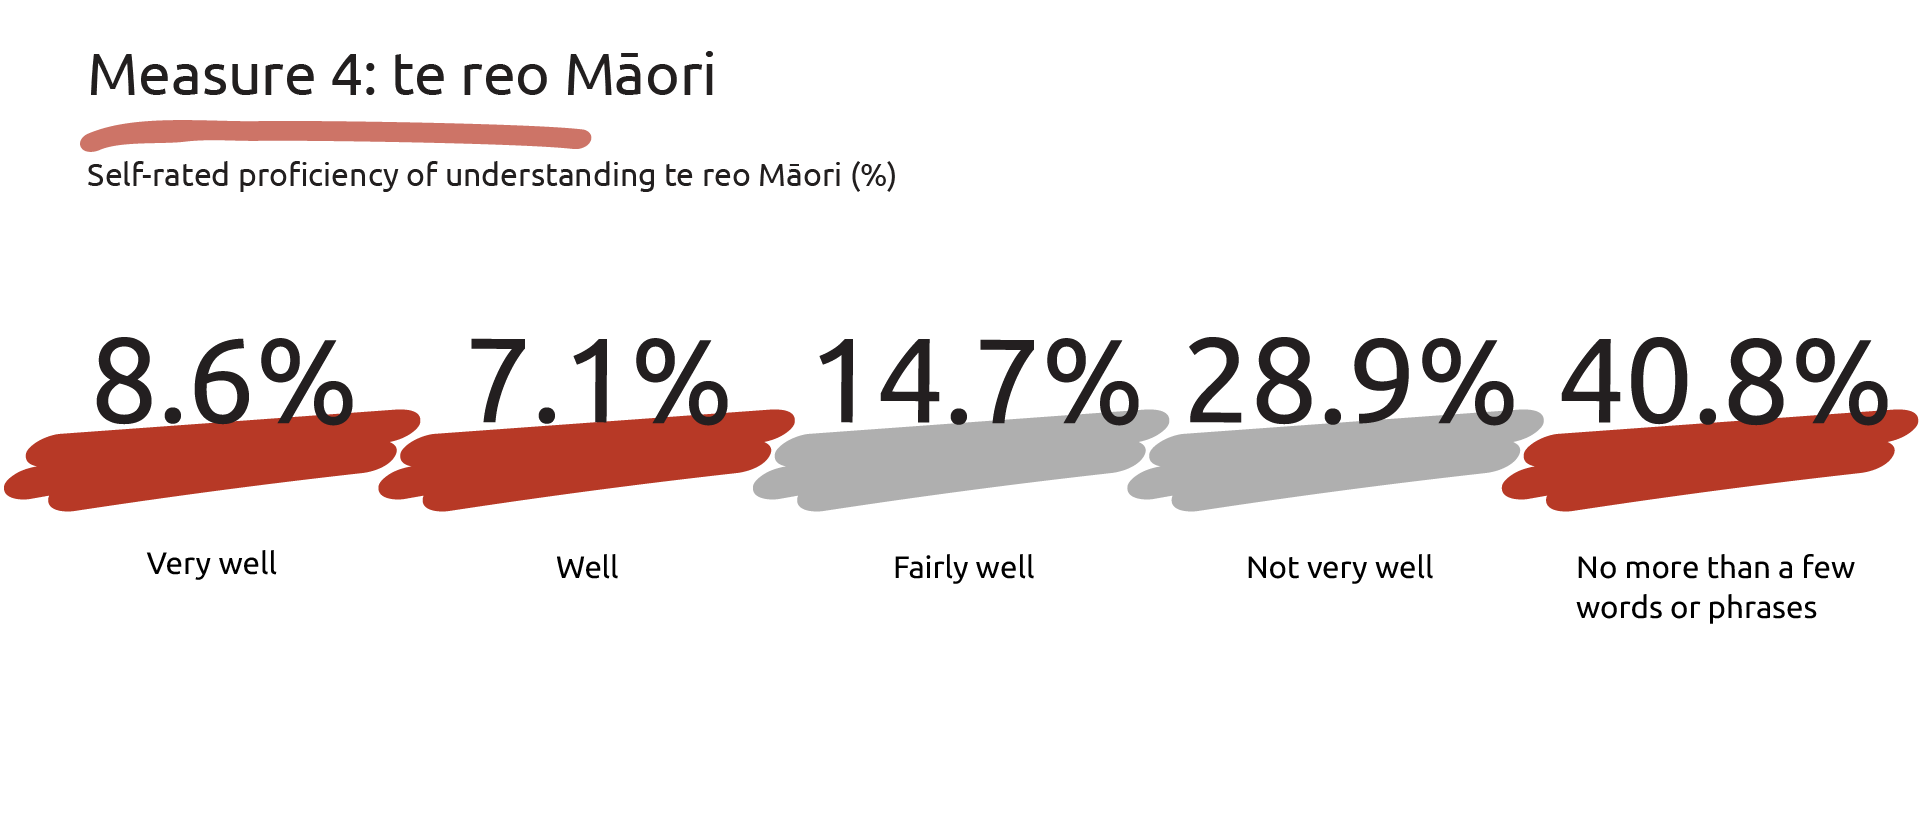 Graphic showing the self rated proficiency of understanding te reo Māori: 8.6 per cent - very well, 7.1 per cent - well, 14.7 per cent - fairly well, 28.9 per cent - not very well and  40.8 per cent - no more than a few words or phrases.